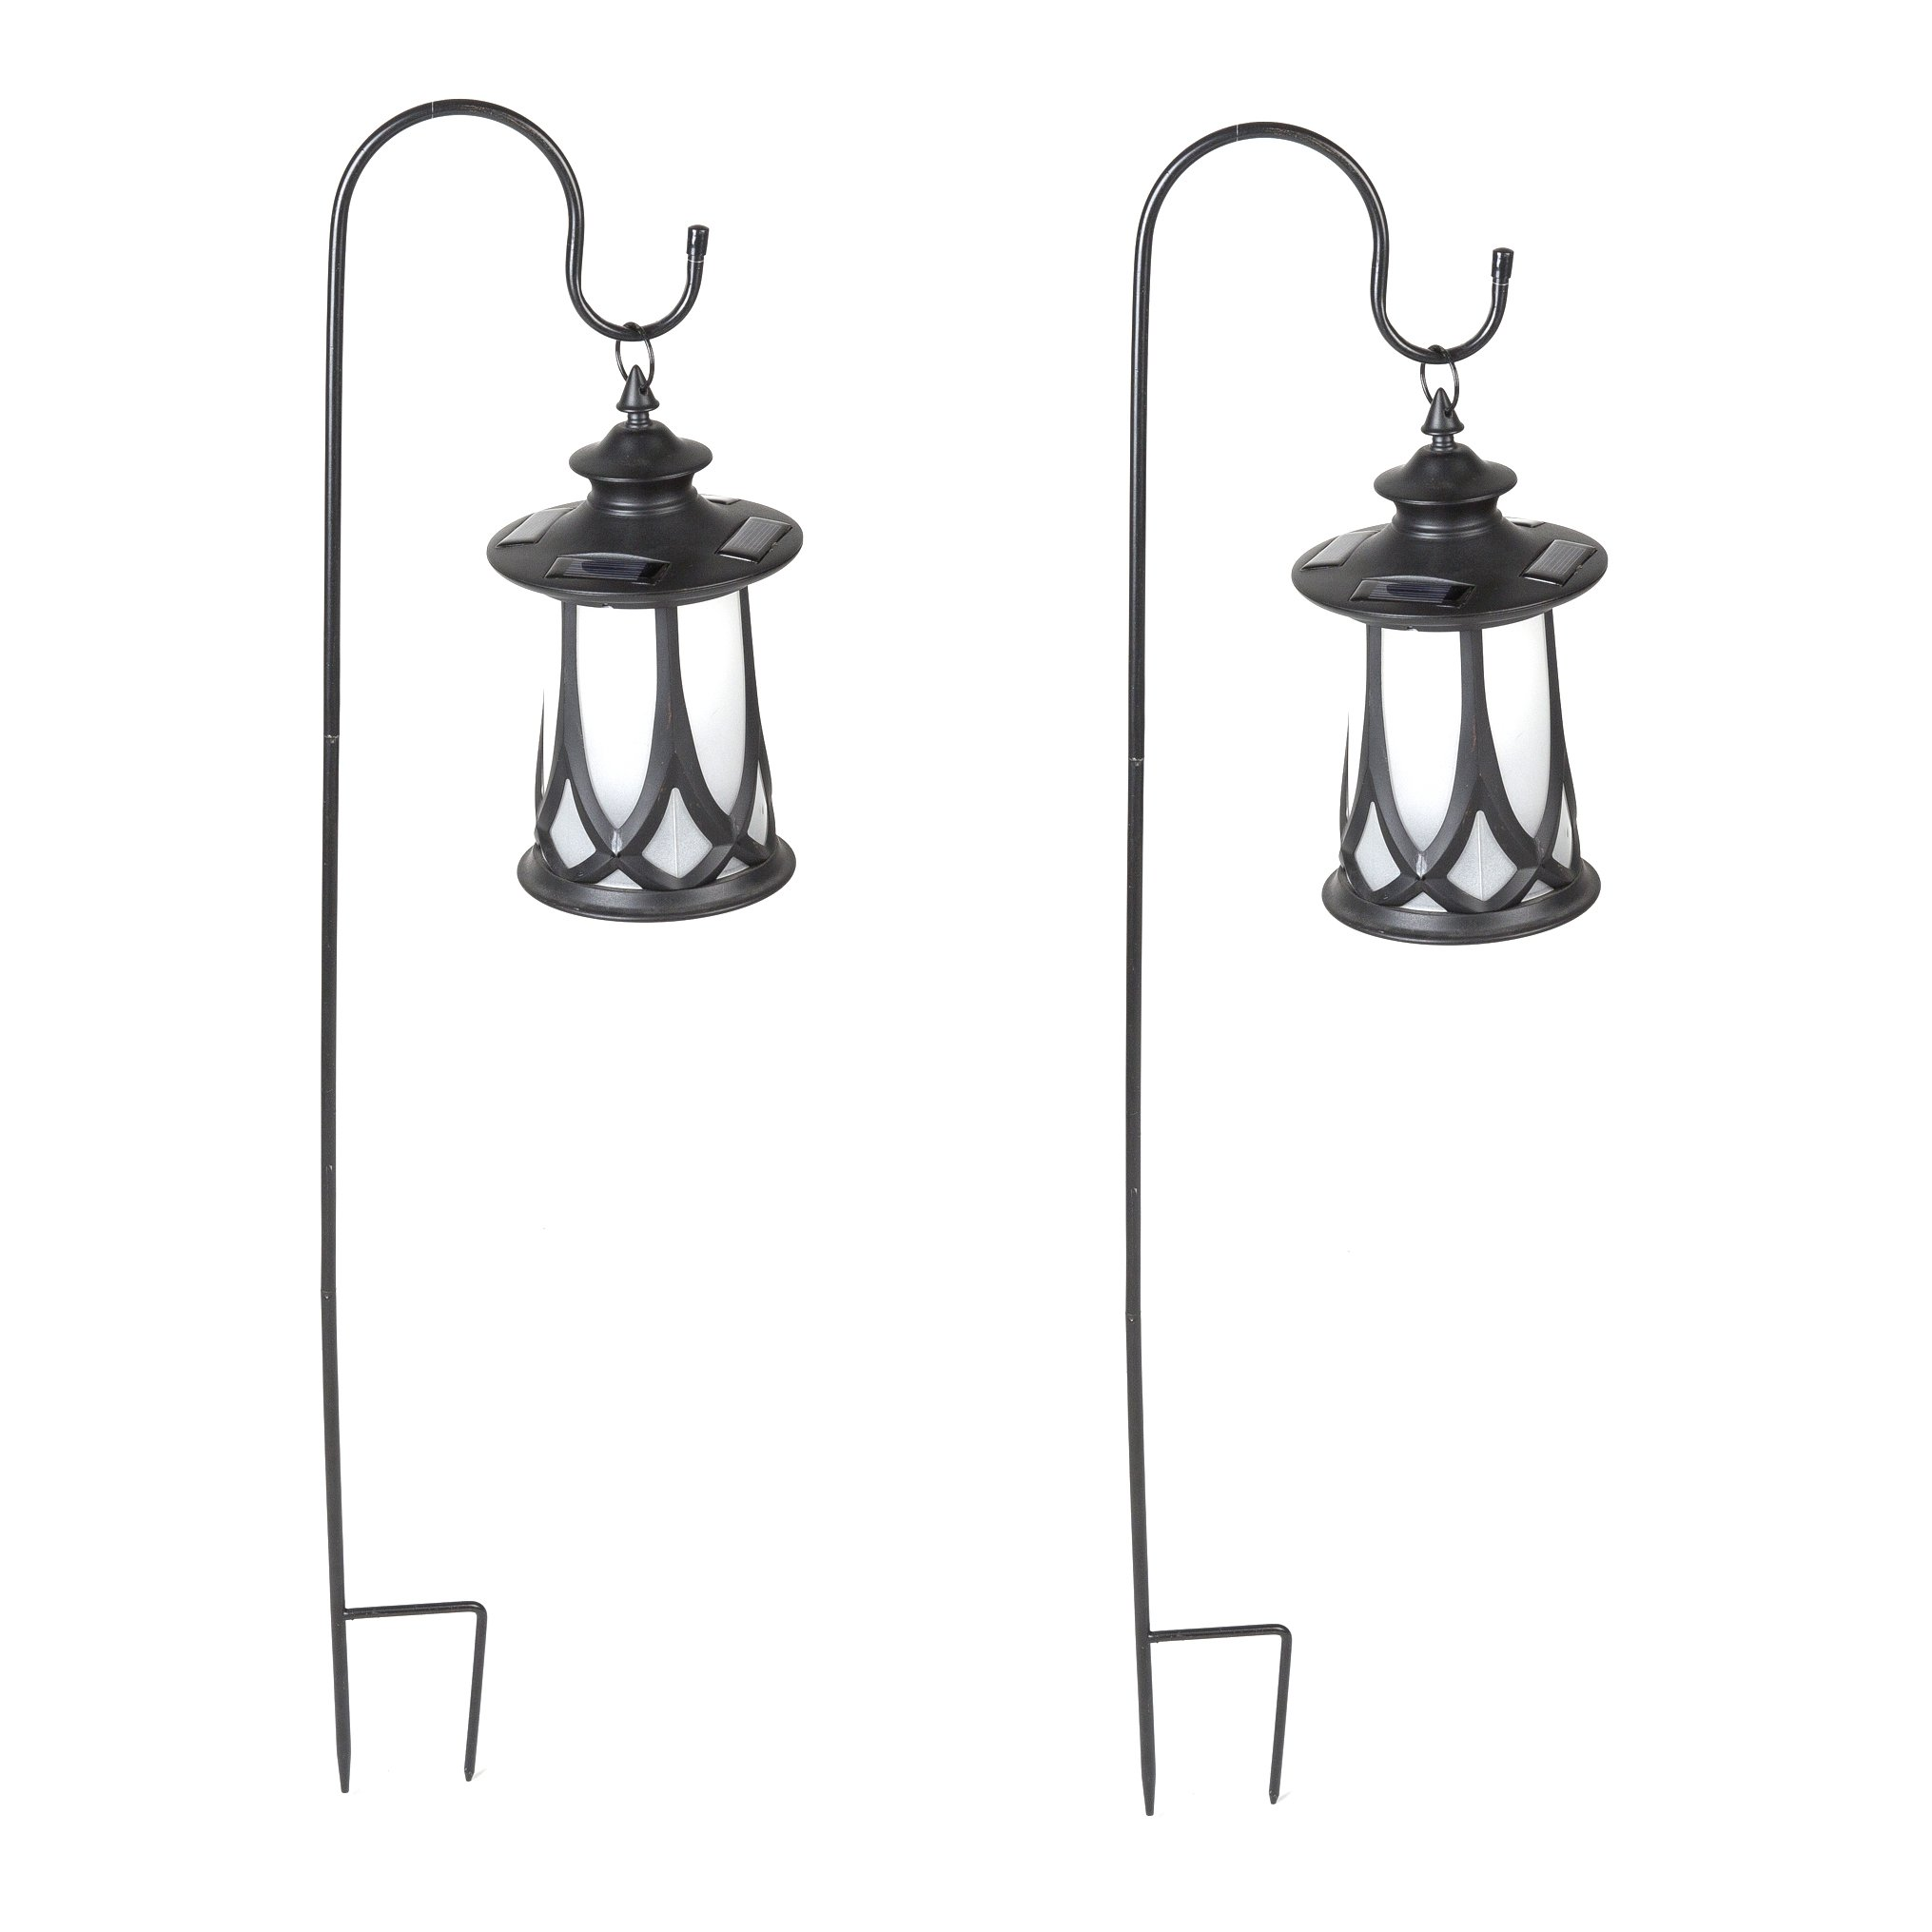 Winsome House Traditional Solar Lanterns with Shepherd's Hooks, Set of 2